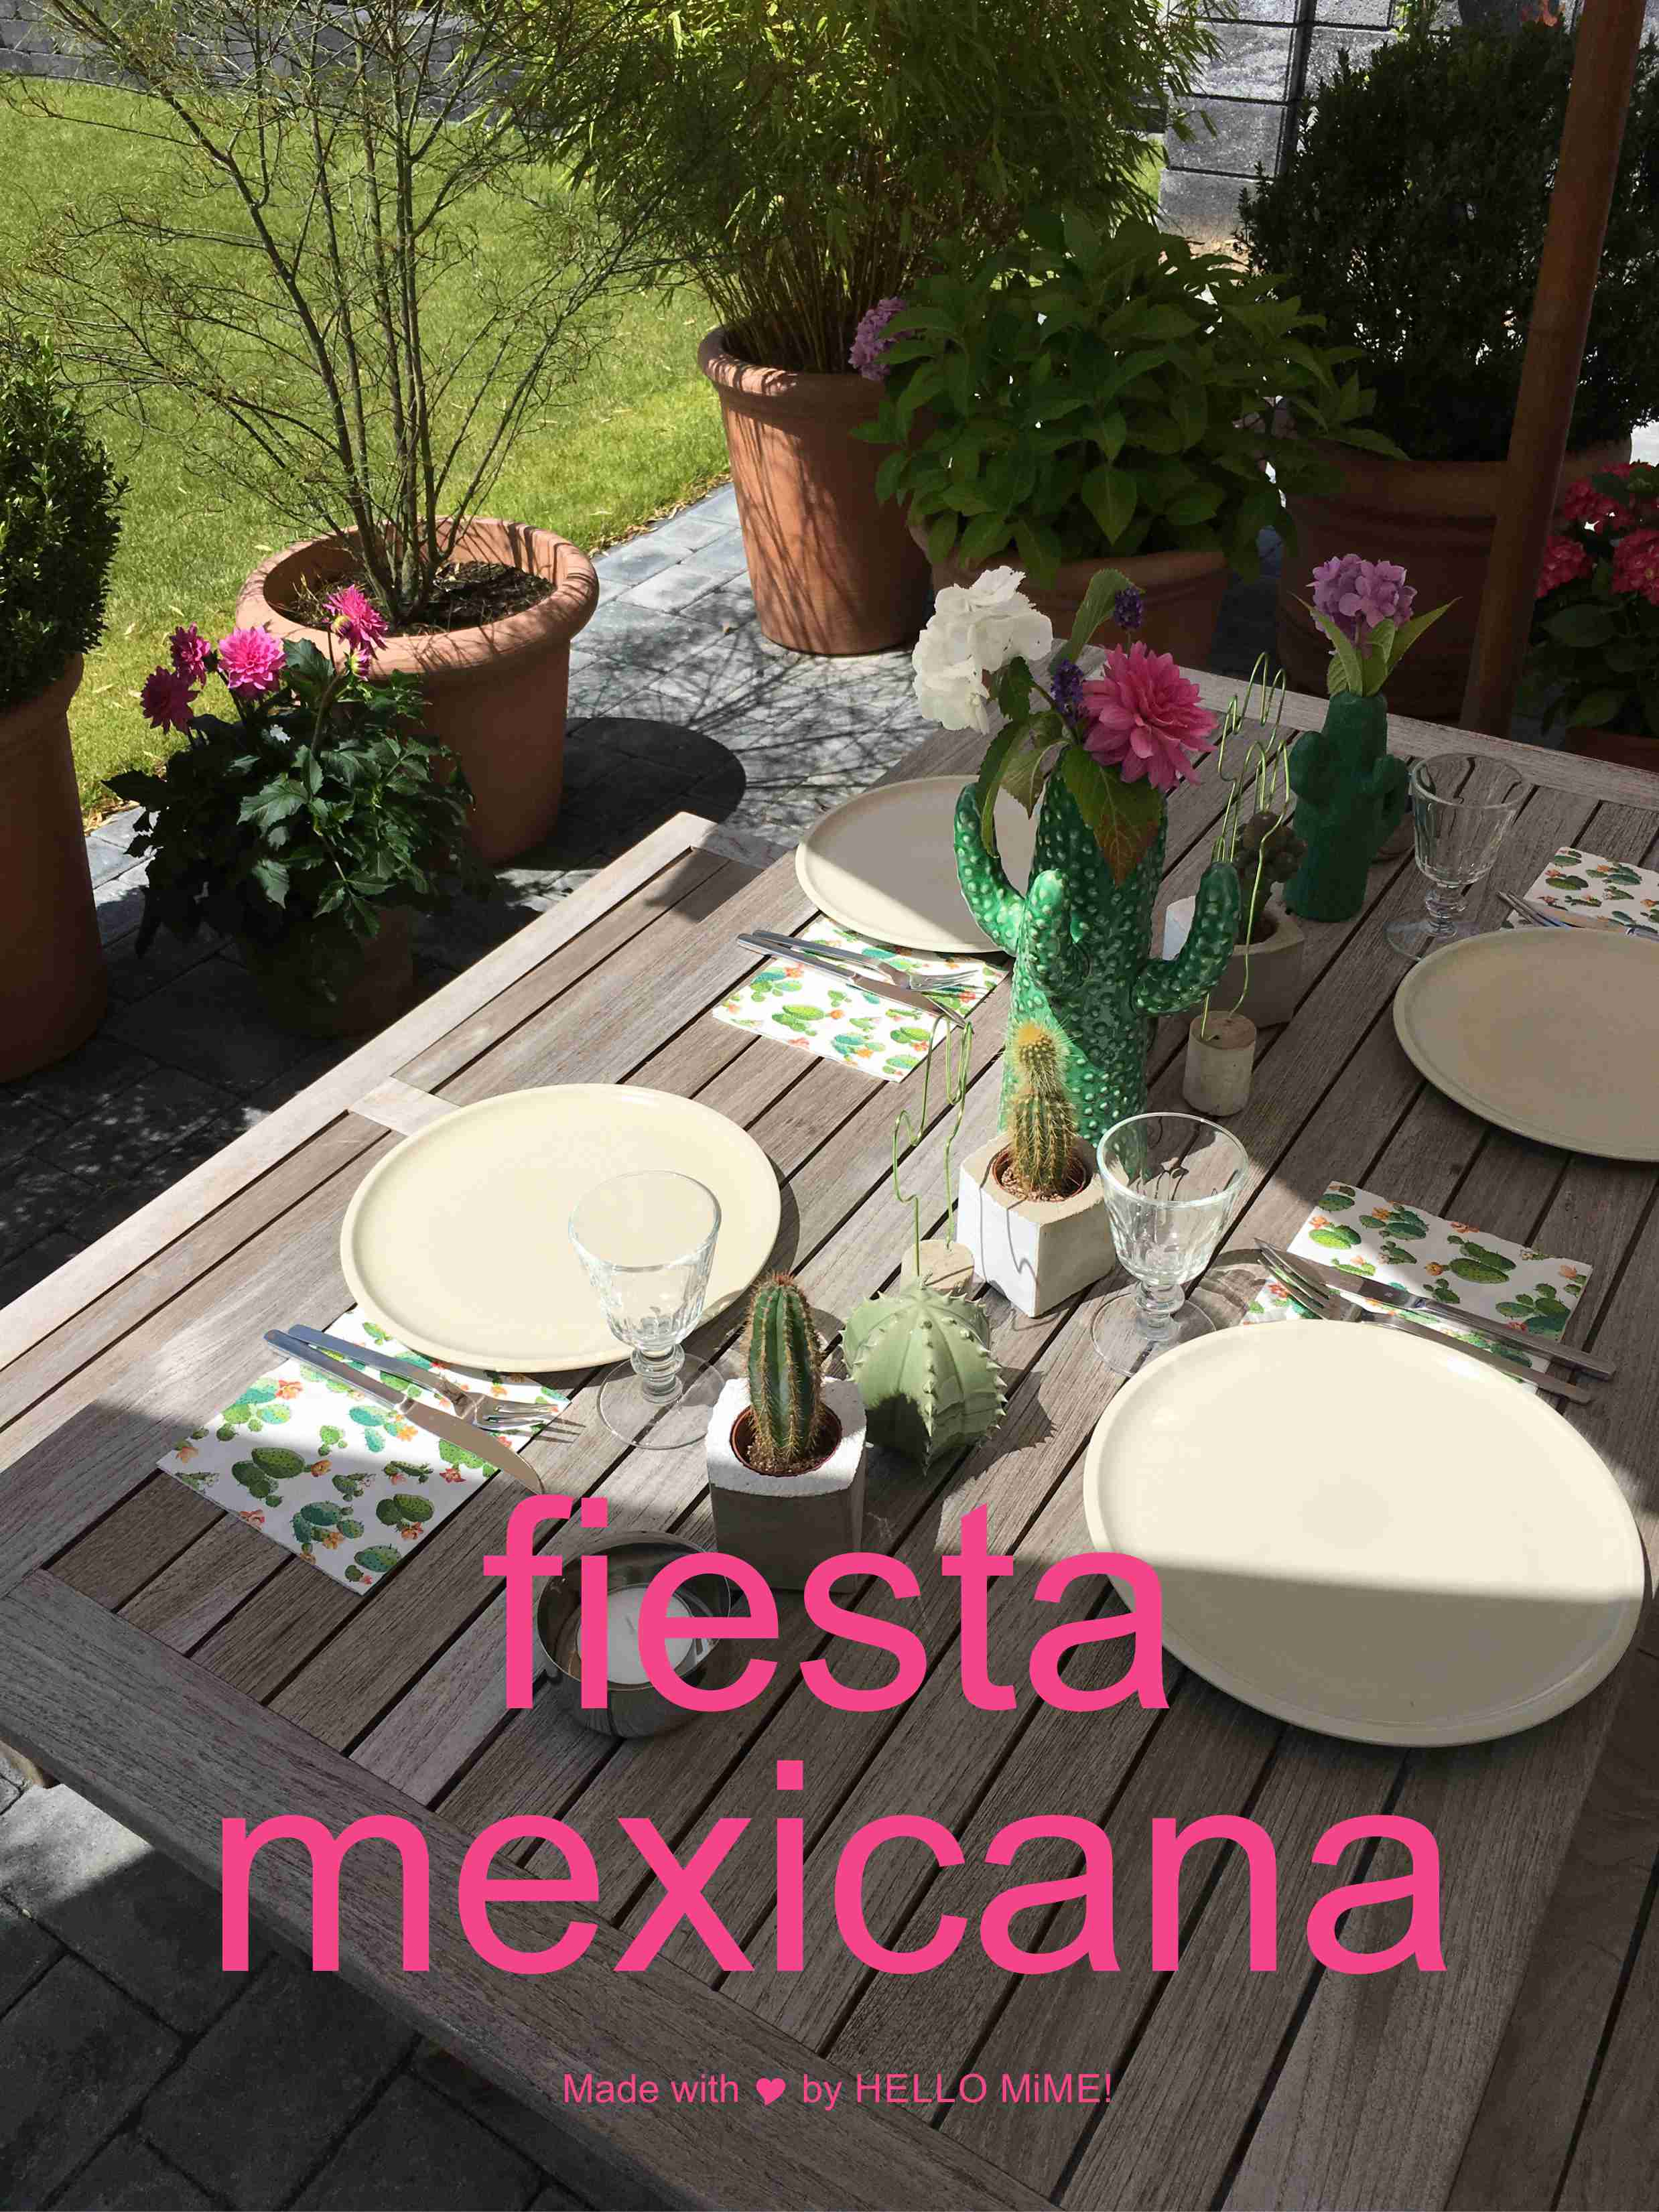 deko ideen mit kakteen f r eine fiesta mexicana hello mime. Black Bedroom Furniture Sets. Home Design Ideas